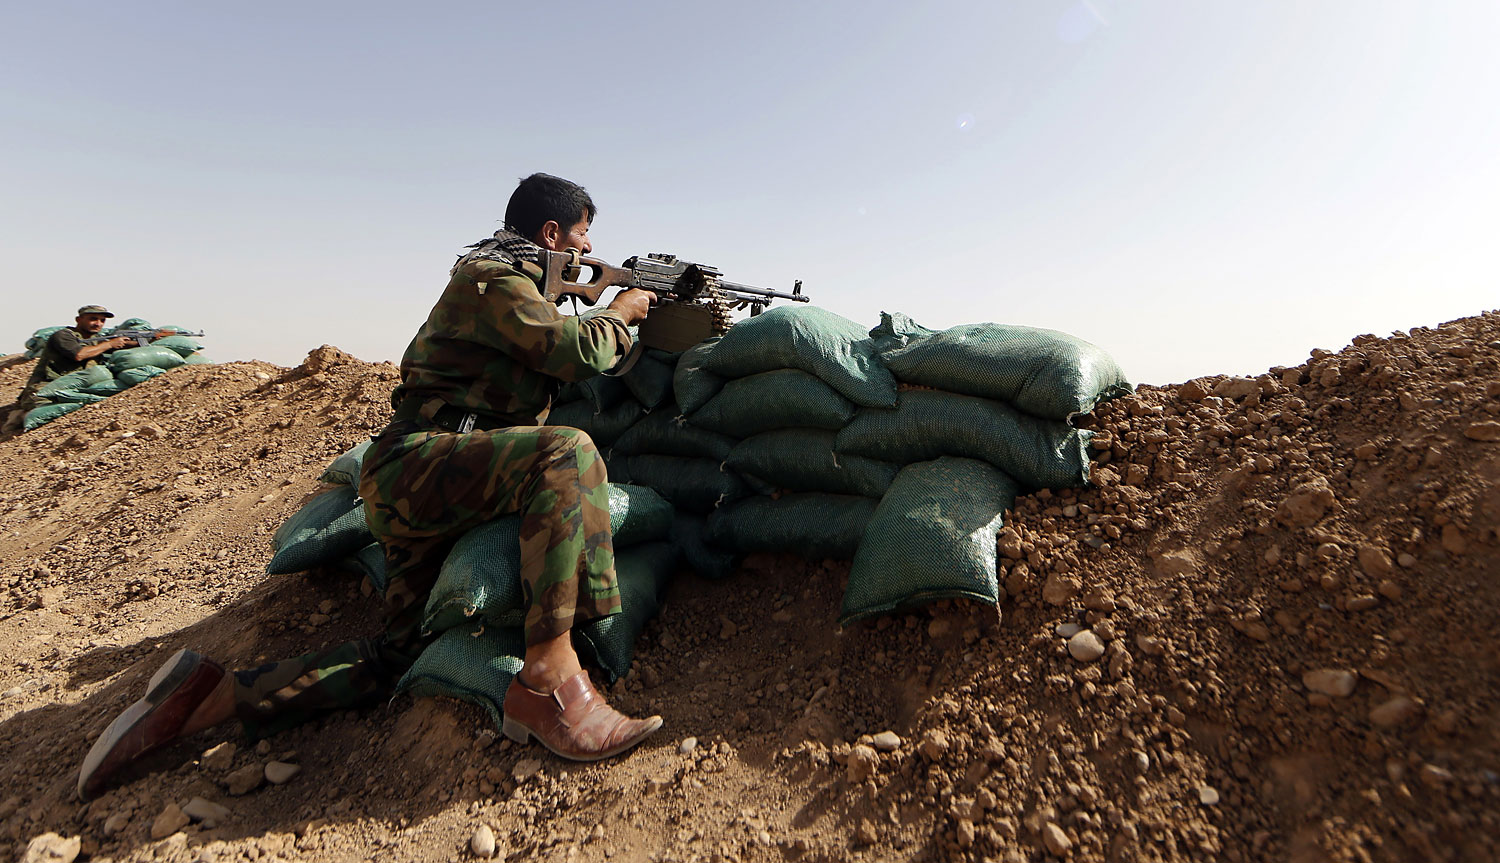 Members of Kurdish forces hold their position in the Iraqi village of Basheer on June 21, 2014